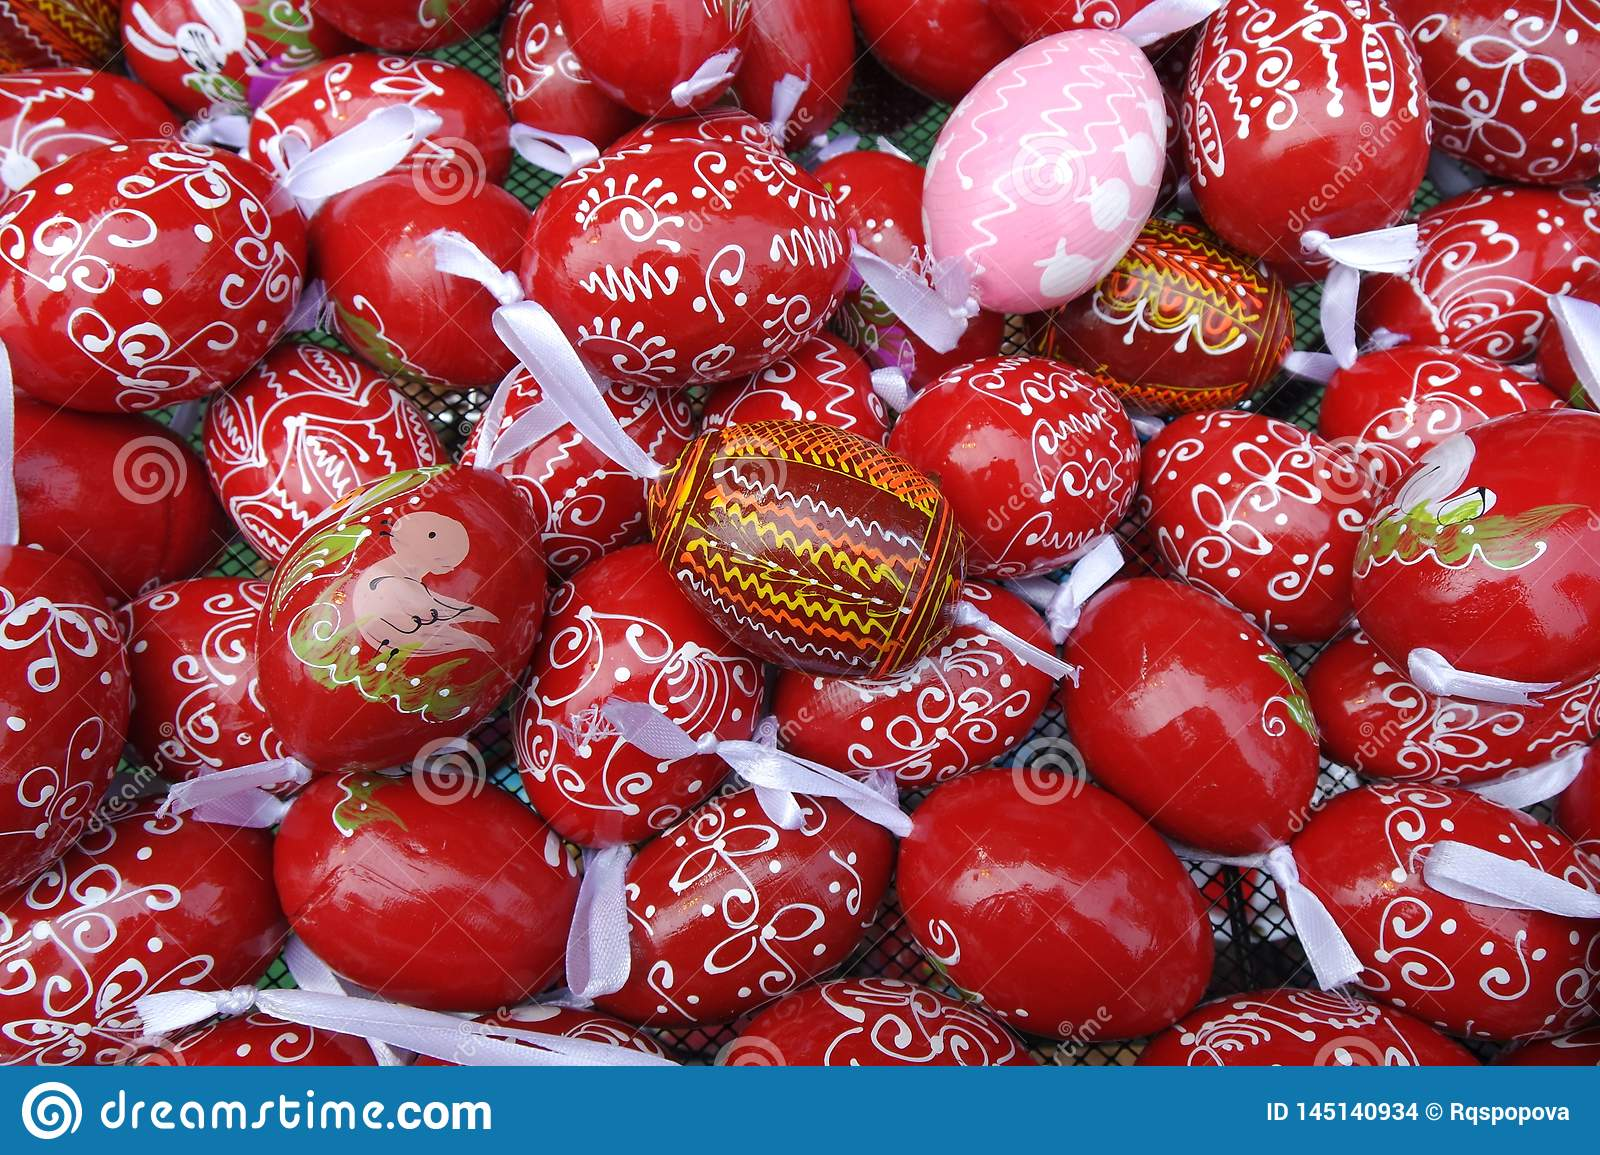 Red and Pink Pattern Easter Eggs Background